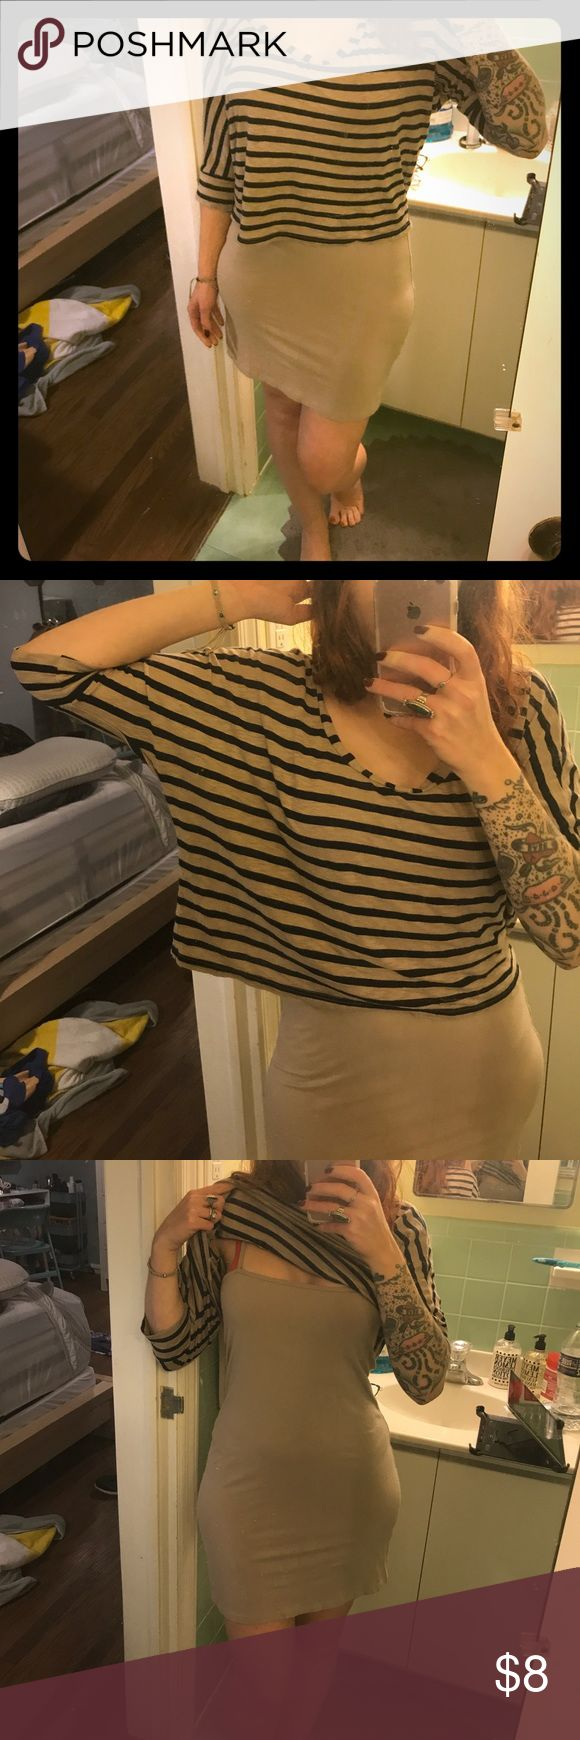 Two piece Splendid slip dress with stripped shirt Beige slip dress with slouchy shirt to put over top. Wear together or as seperates. Cute with brown booties and denim jacket. Splendid Dresses Mini